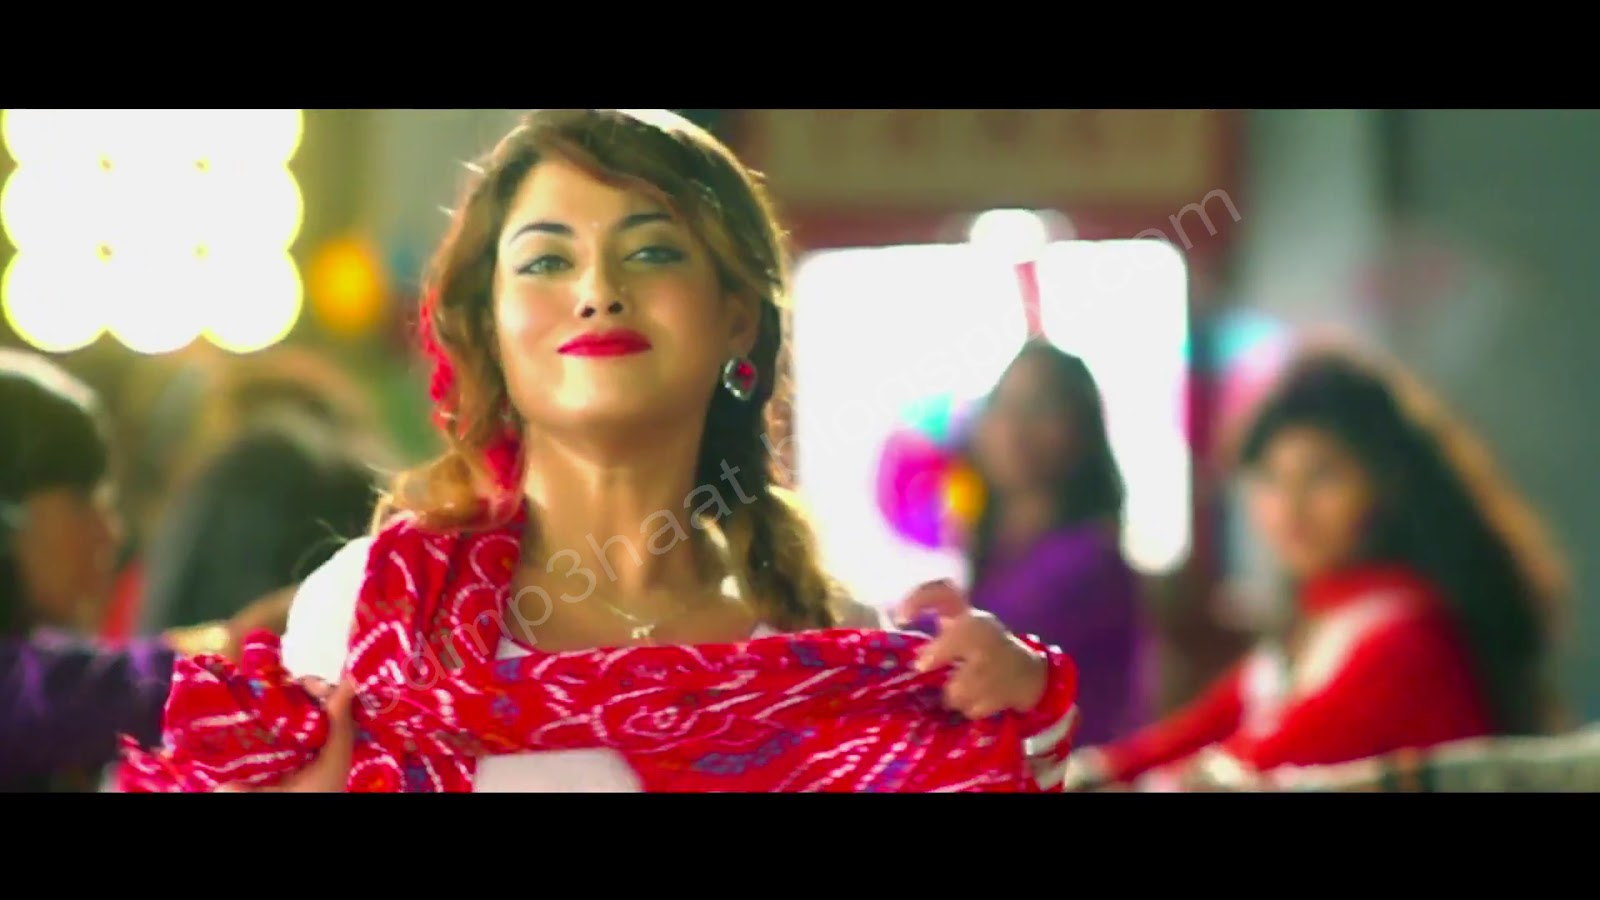 Boisakhi Rong New Full Hd Video Song Imran Milon 2016 Bangla Music Video Free Download Mobo Music Download Site